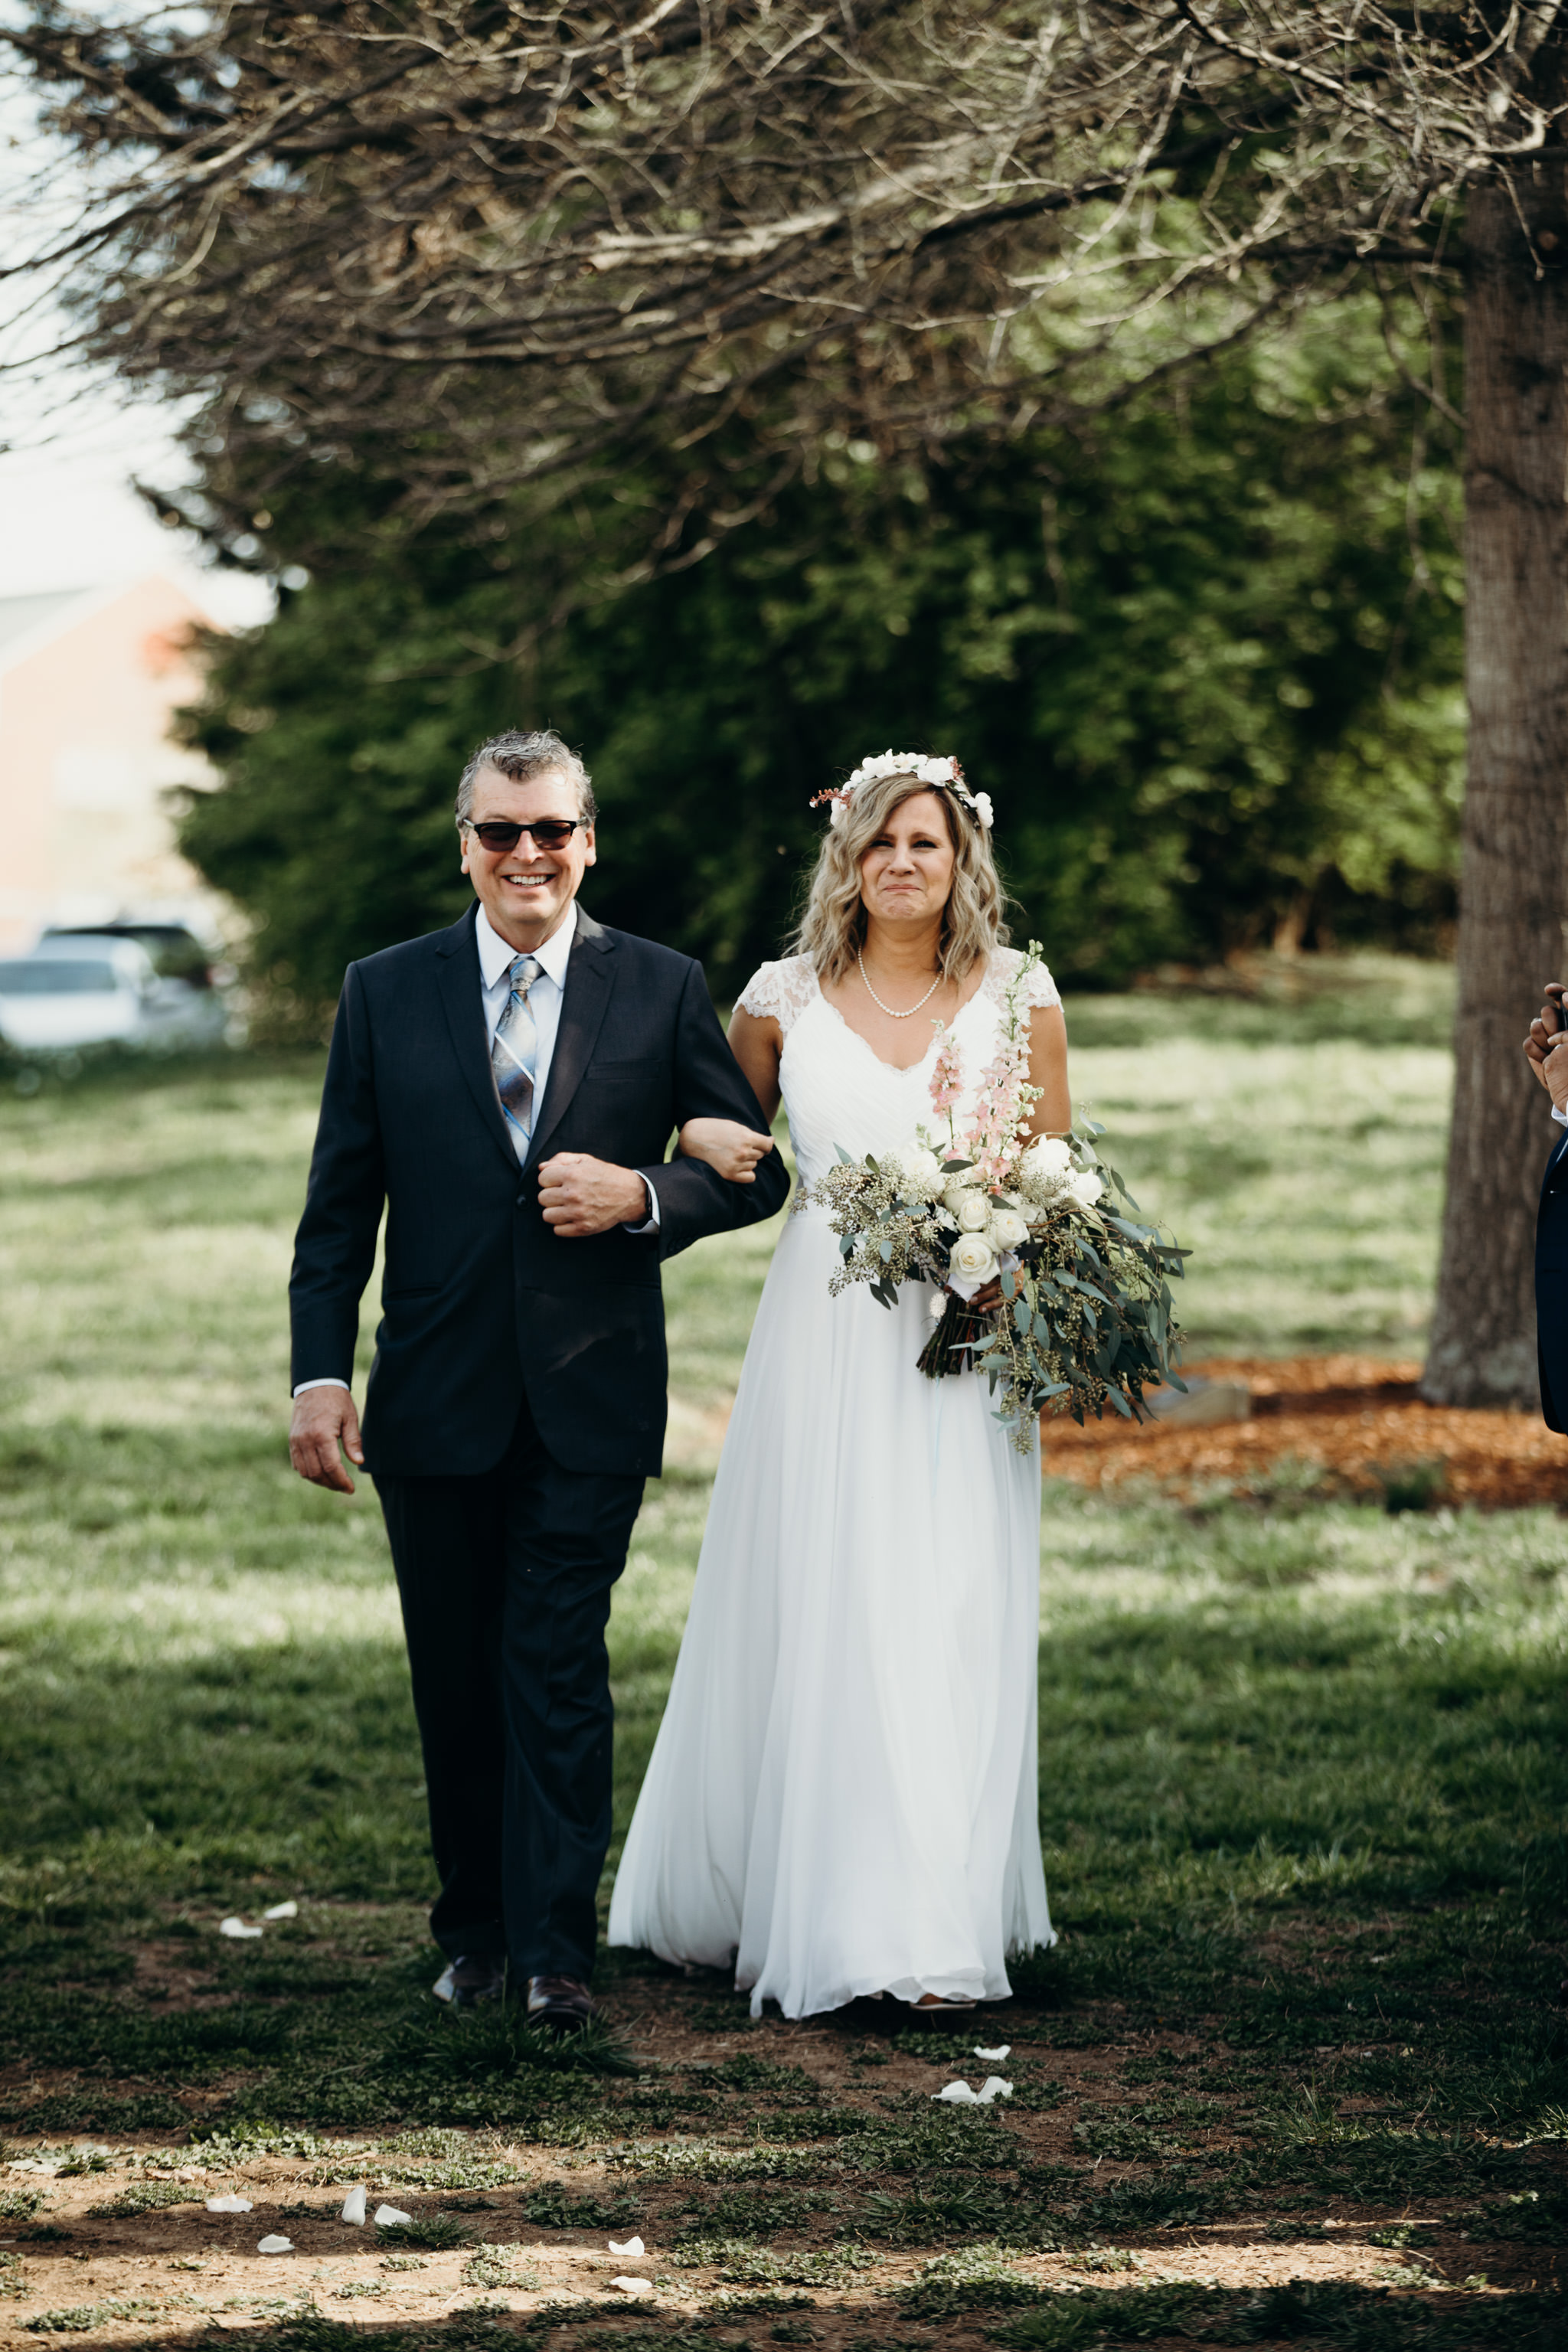 Bride walking down the aisle at summer wedding in Brentwood, Tennessee